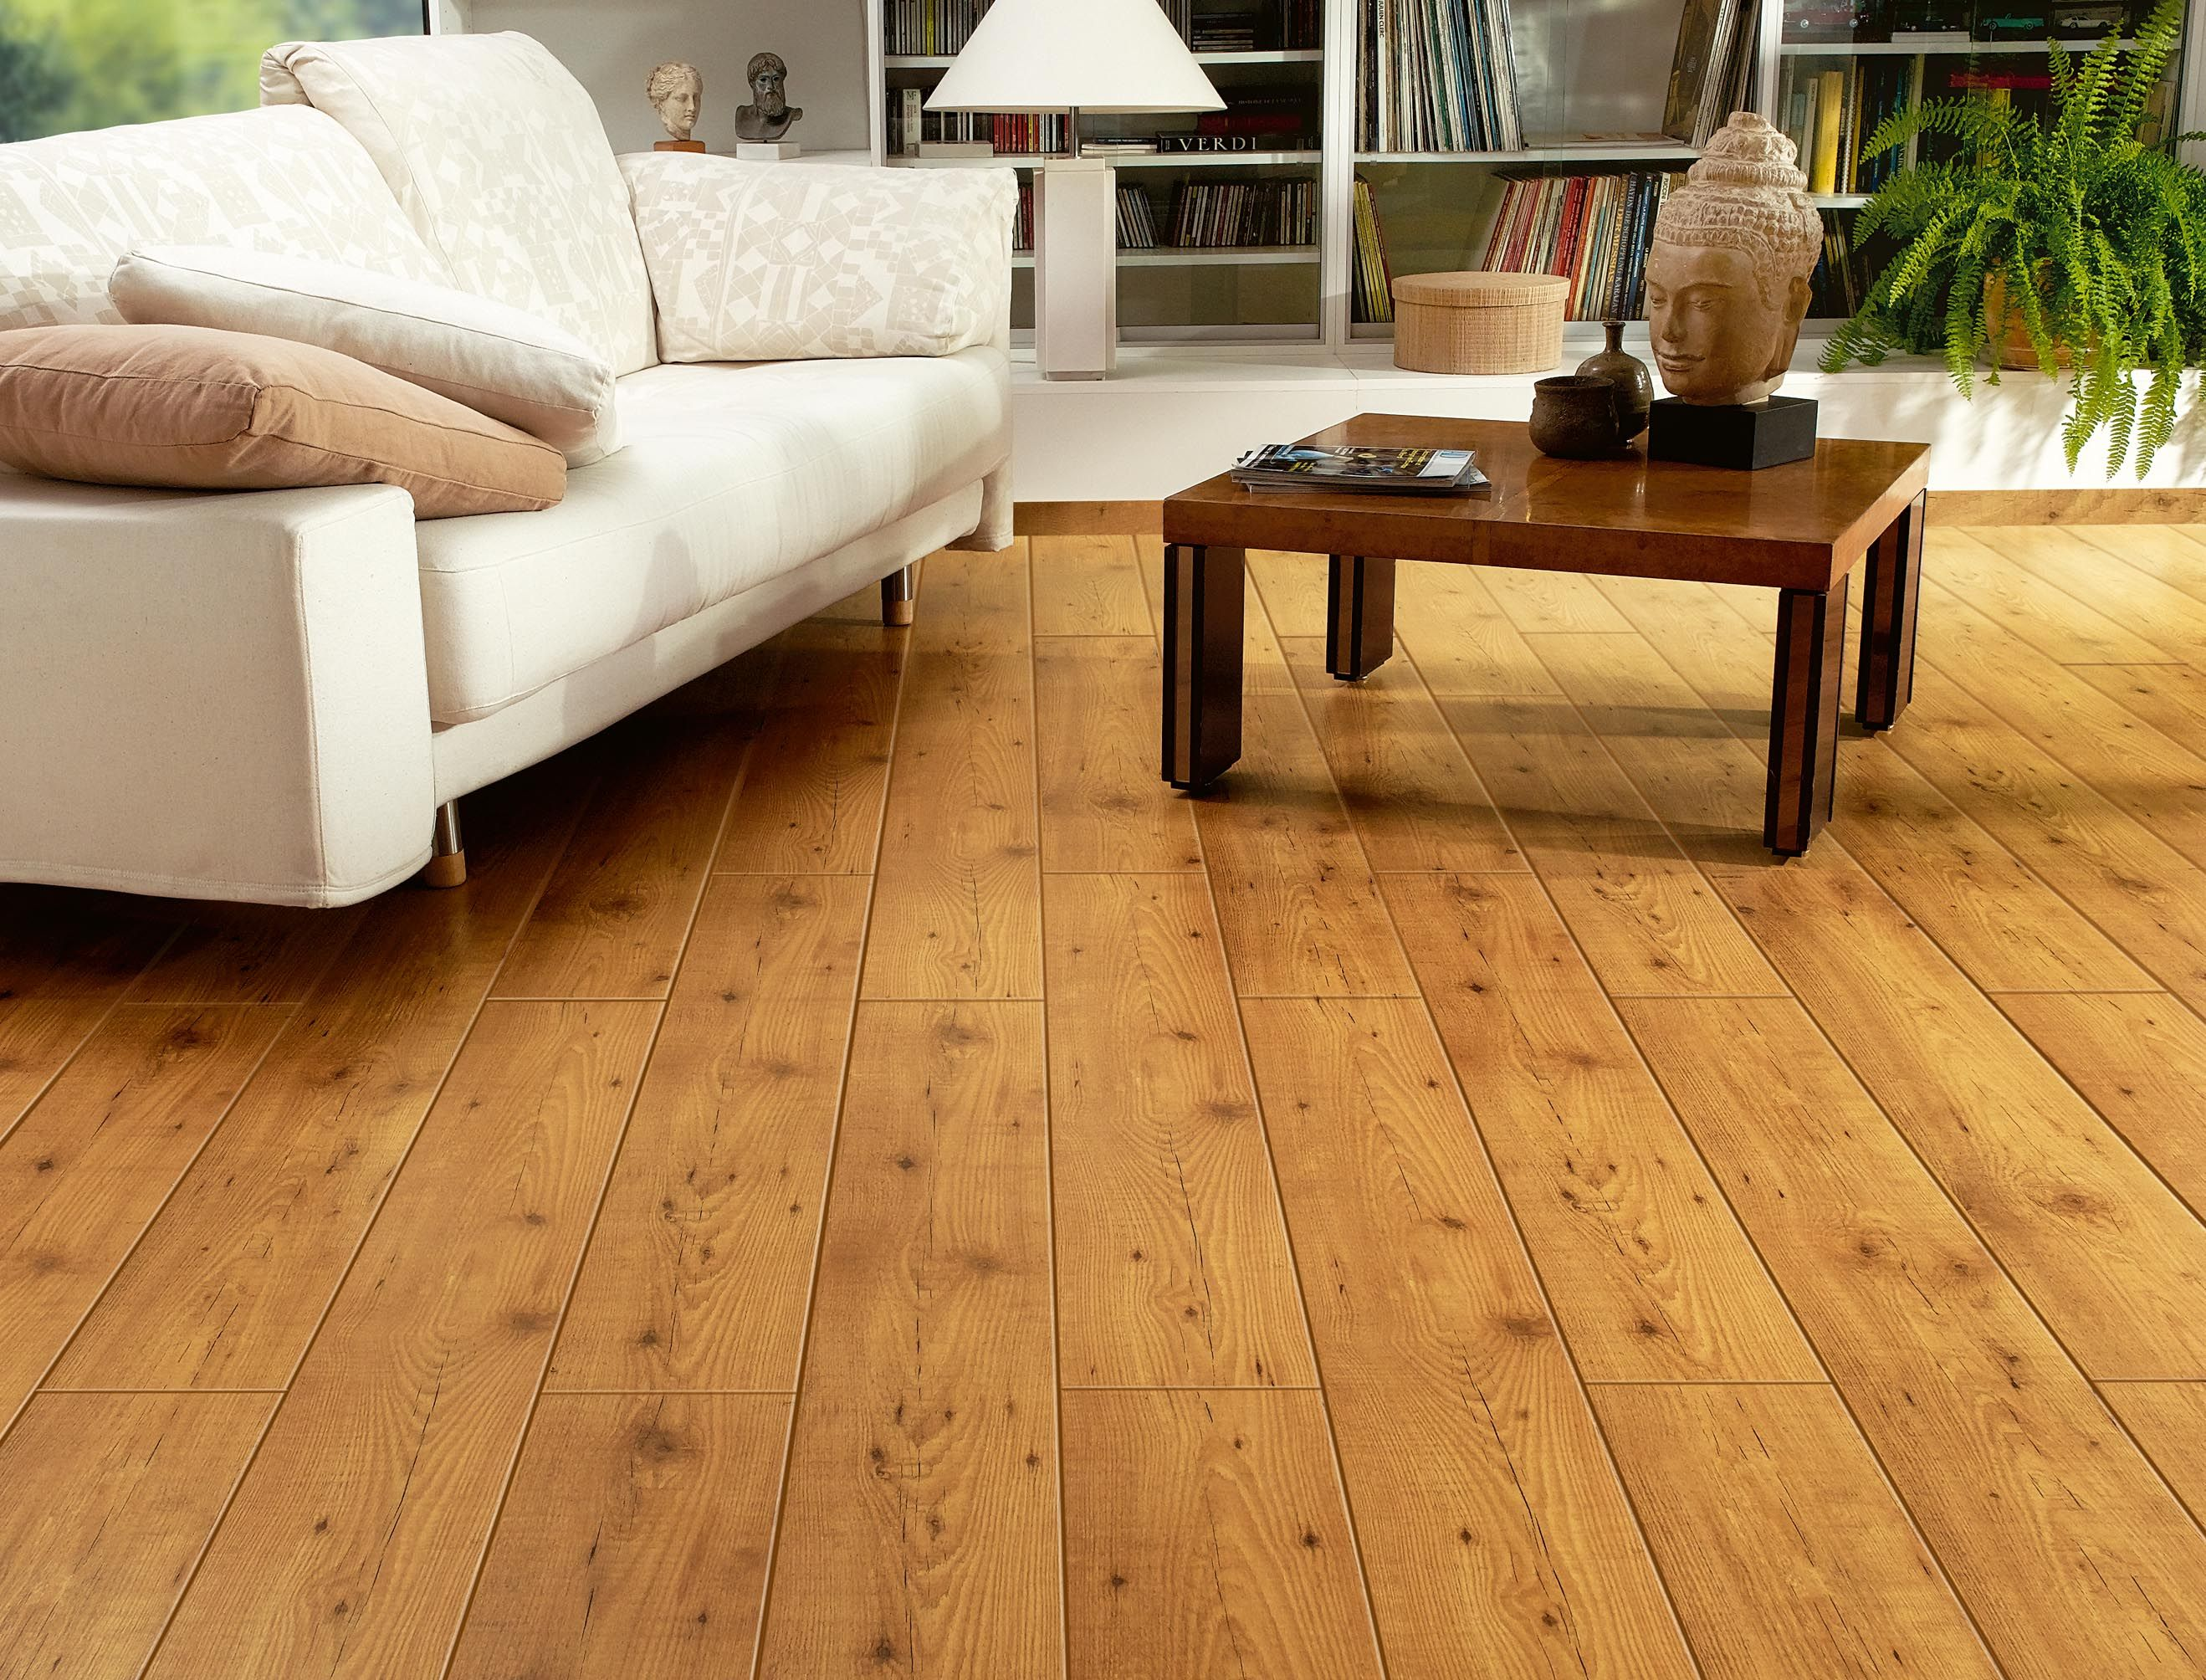 Nowadays People Are Very Fascinated About The Wooden Floor Design If You Are Looking Wooden Floor Design Visit Wooden Flooring Flooring Timber Flooring